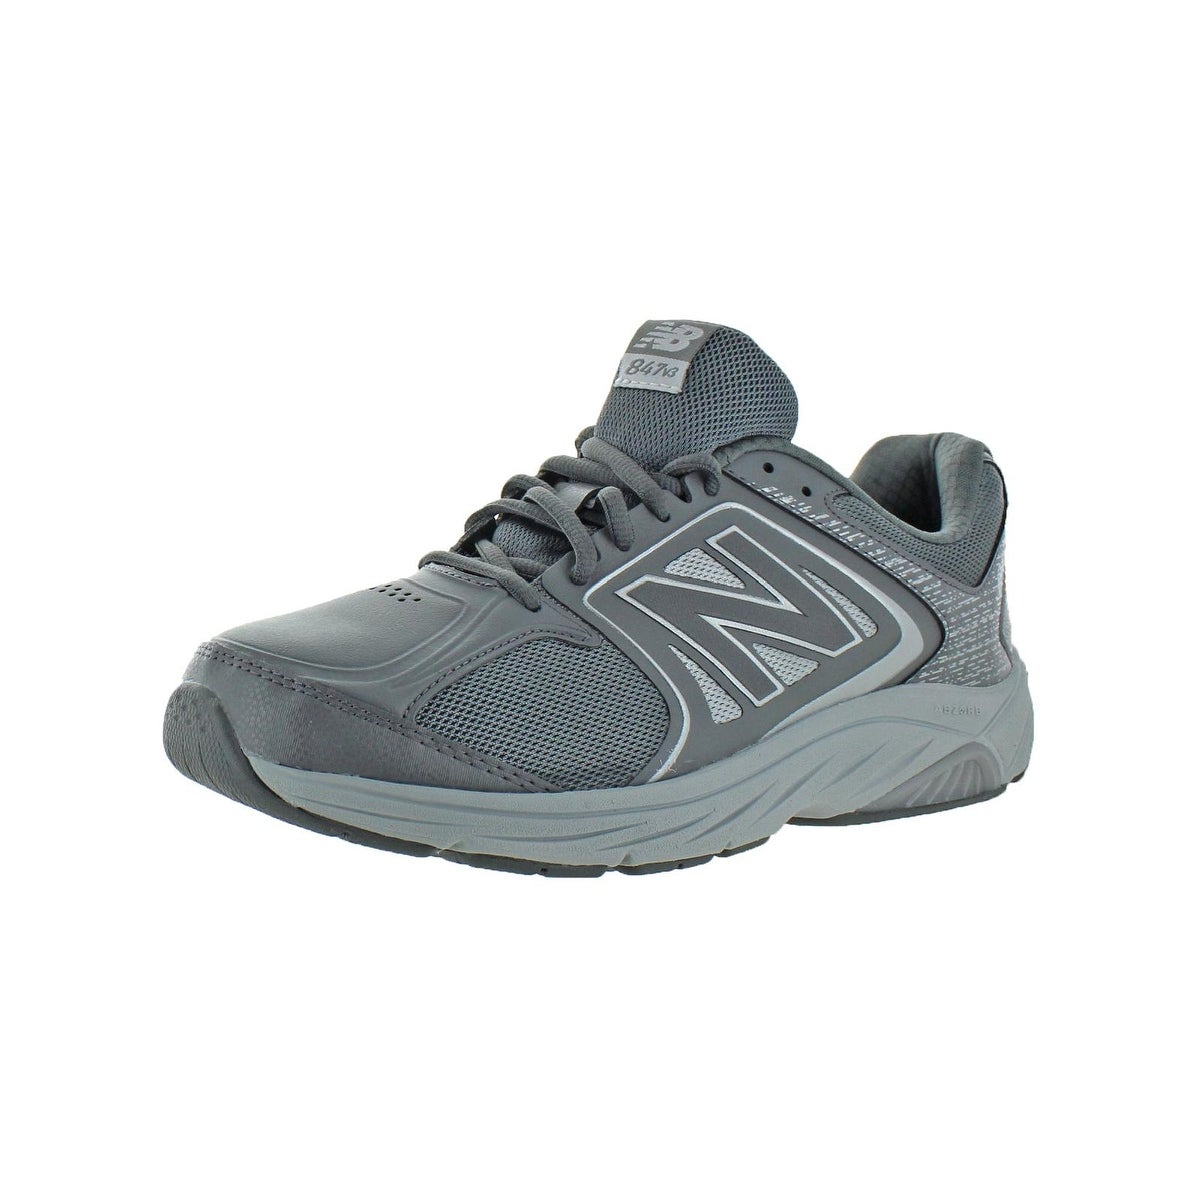 Buy Walking New Balance Women's Athletic Shoes Online at